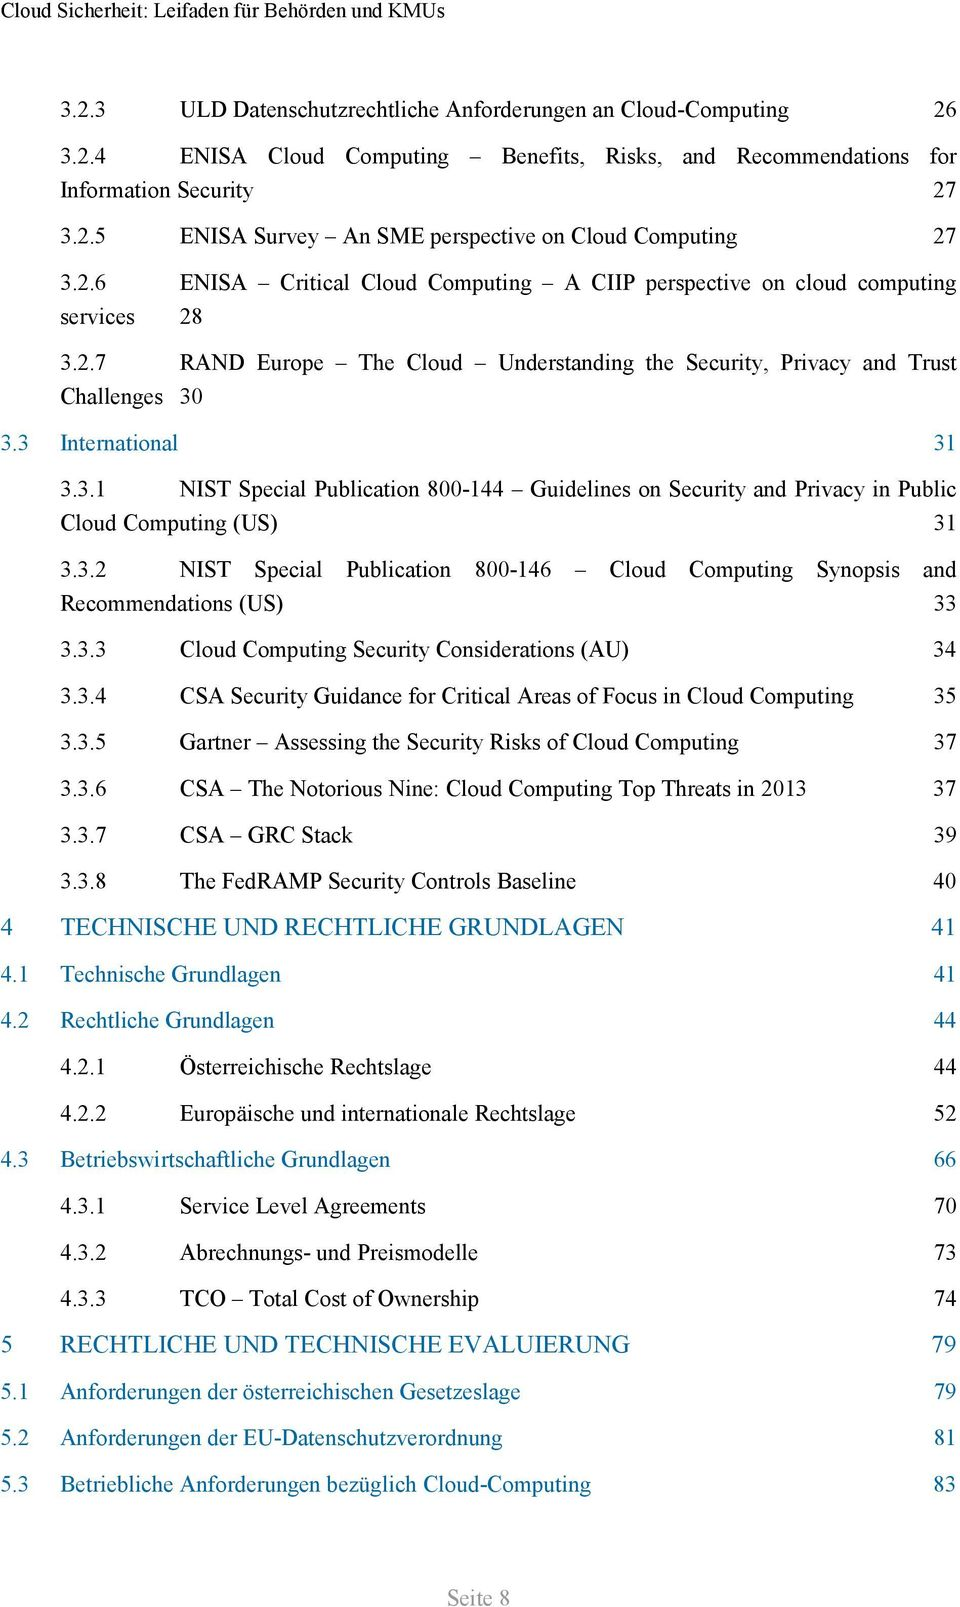 3 International 31 3.3.1 NIST Special Publication 800-144 Guidelines on Security and Privacy in Public Cloud Computing (US) 31 3.3.2 NIST Special Publication 800-146 Cloud Computing Synopsis and Recommendations (US) 33 3.